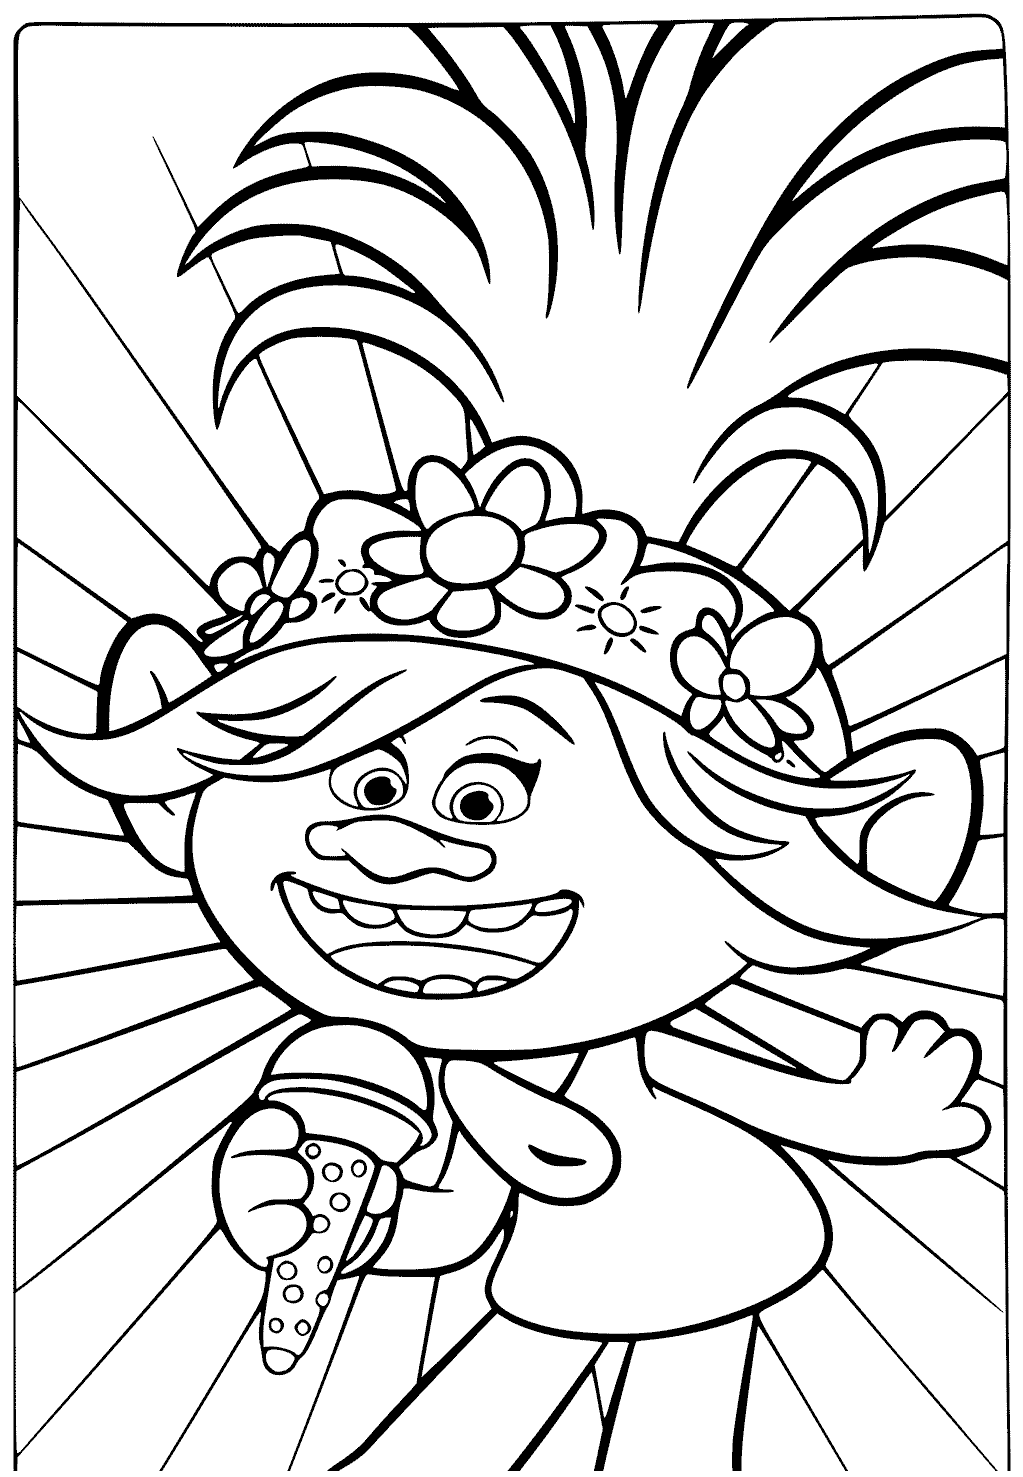 trolls coloring pages trolls movie coloring pages best coloring pages for kids pages coloring trolls